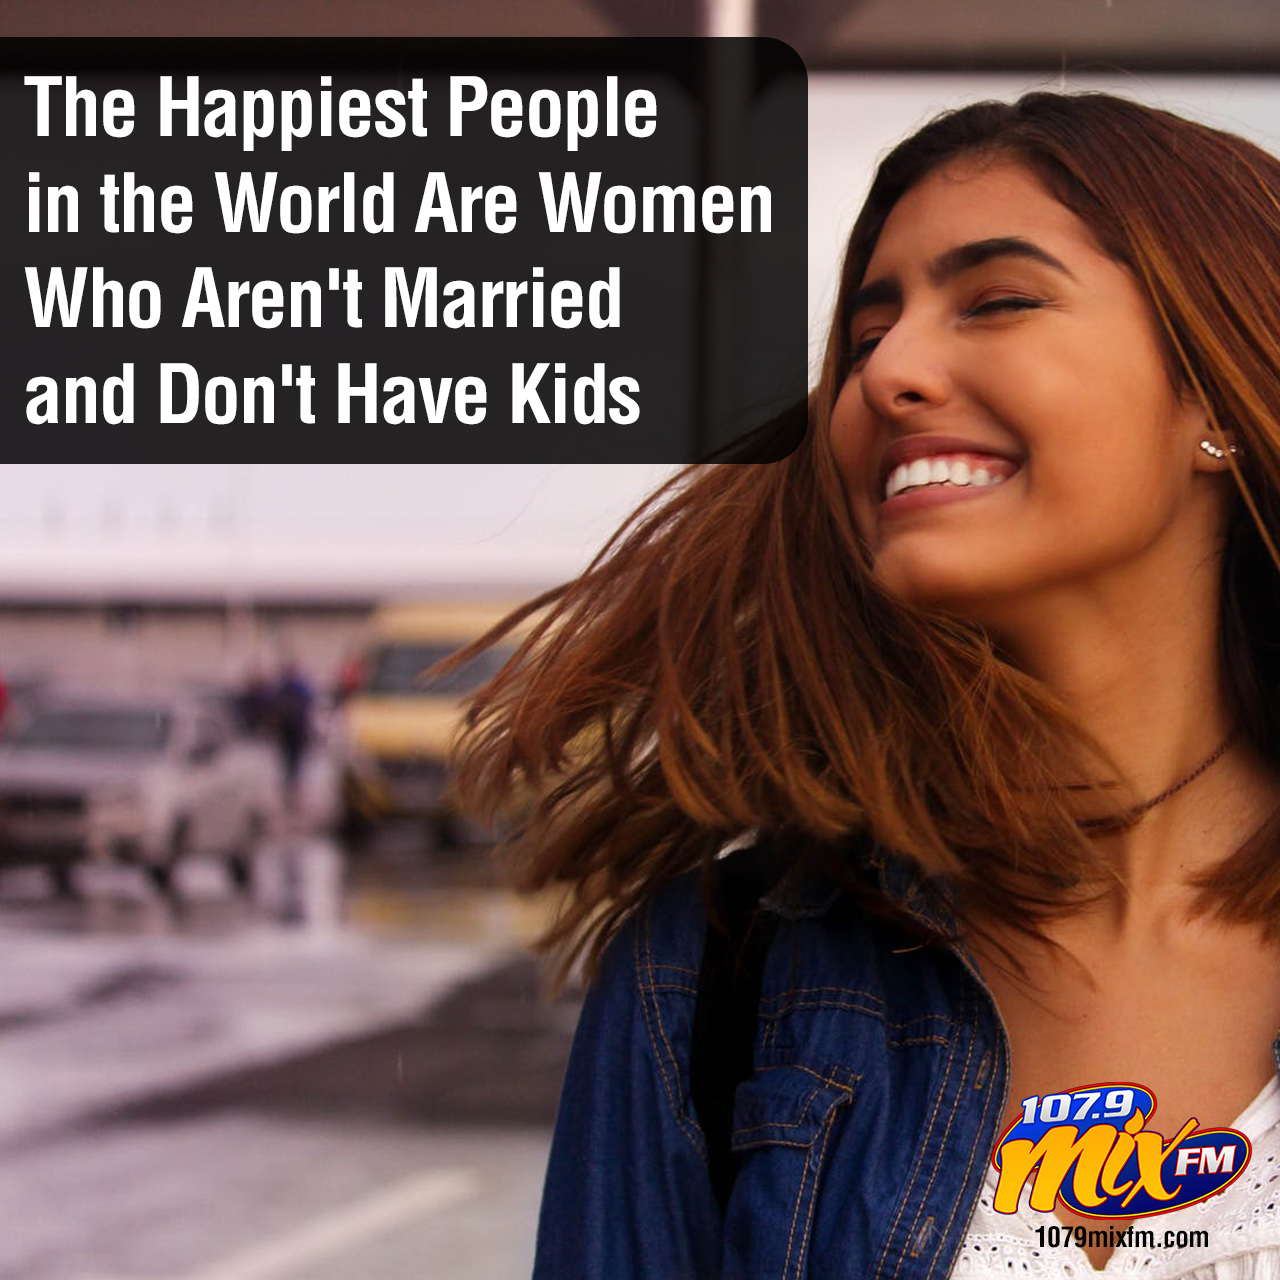 The Happiest People in the World Are Women Who Aren't Married and Don't Have Kids